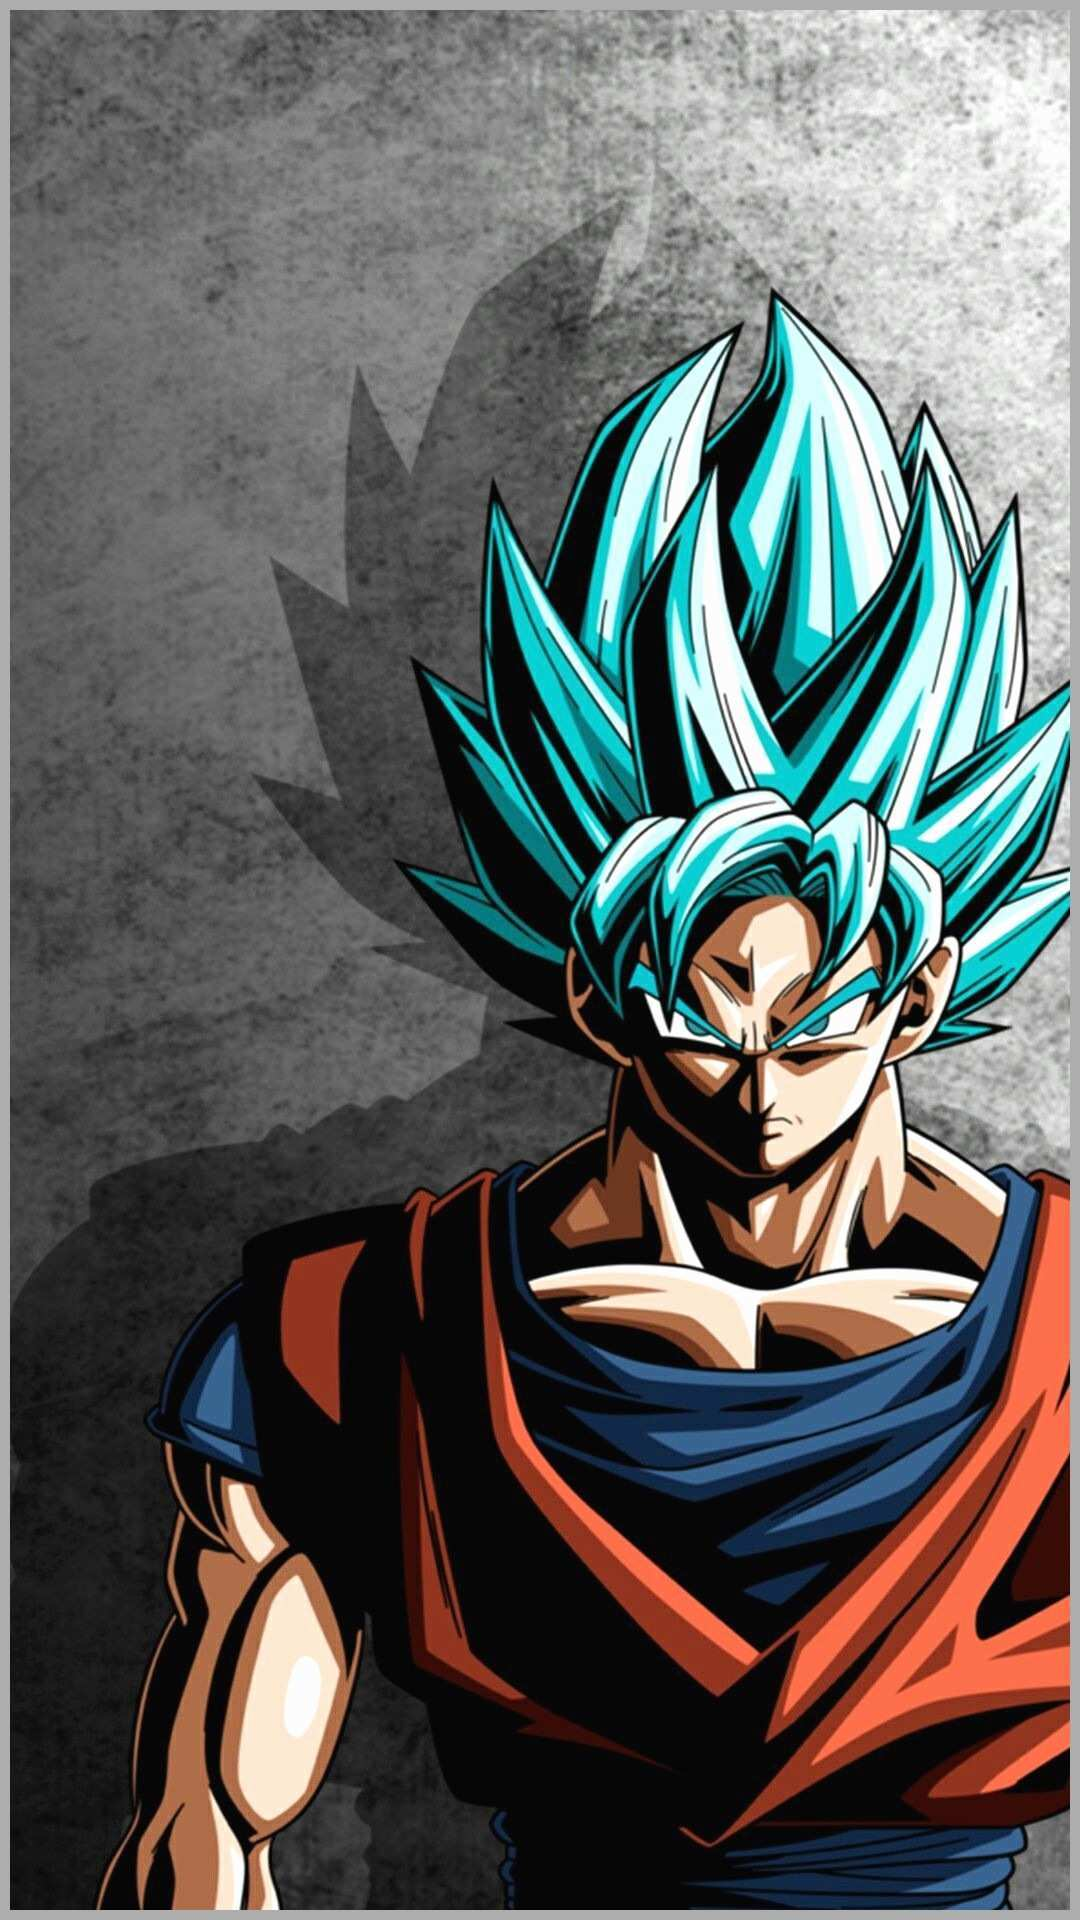 Dragon Ball Iphone Wallpapers Top Free Dragon Ball Iphone Backgrounds Wallpaperaccess